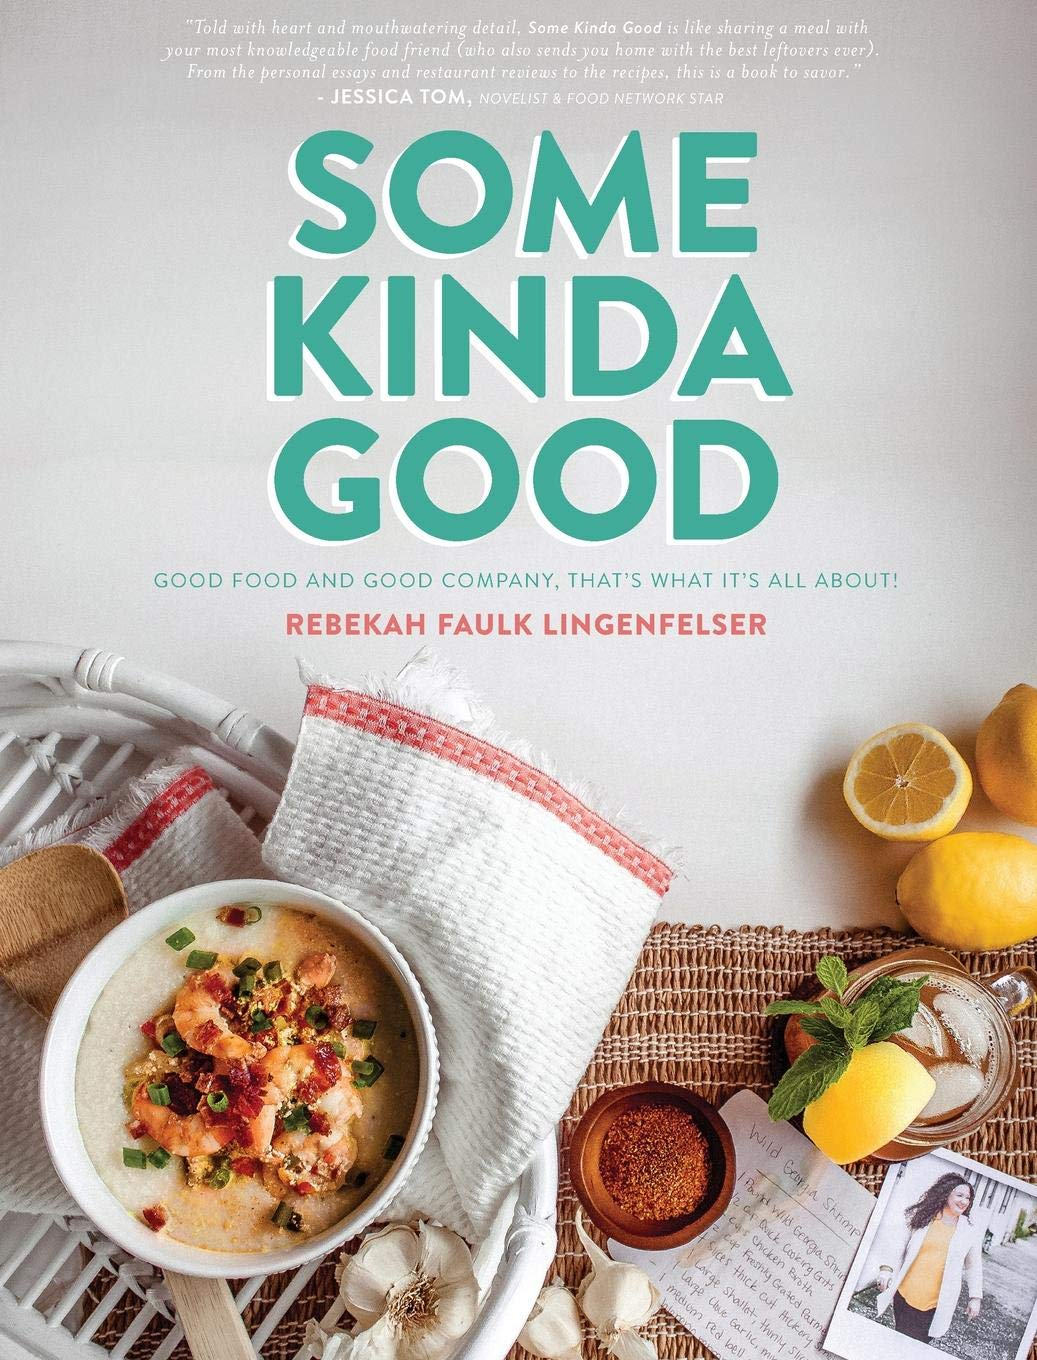 Some Kinda Good: Good Food and Good Company, That's What It's All